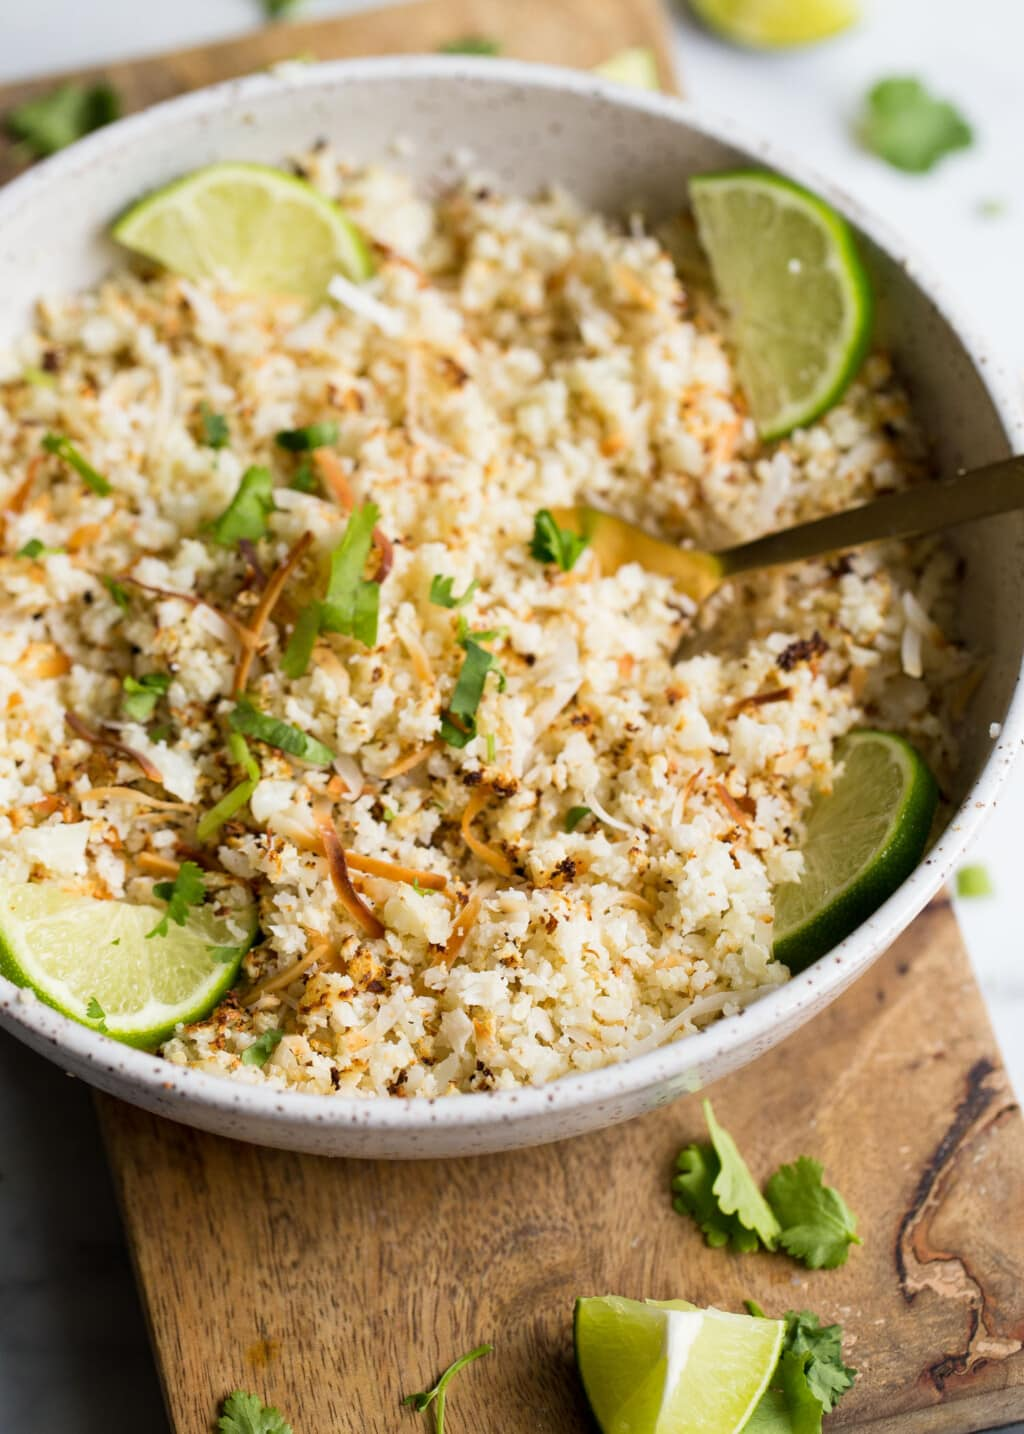 cauliflower rice in a bowl with lime wedges and coconut.